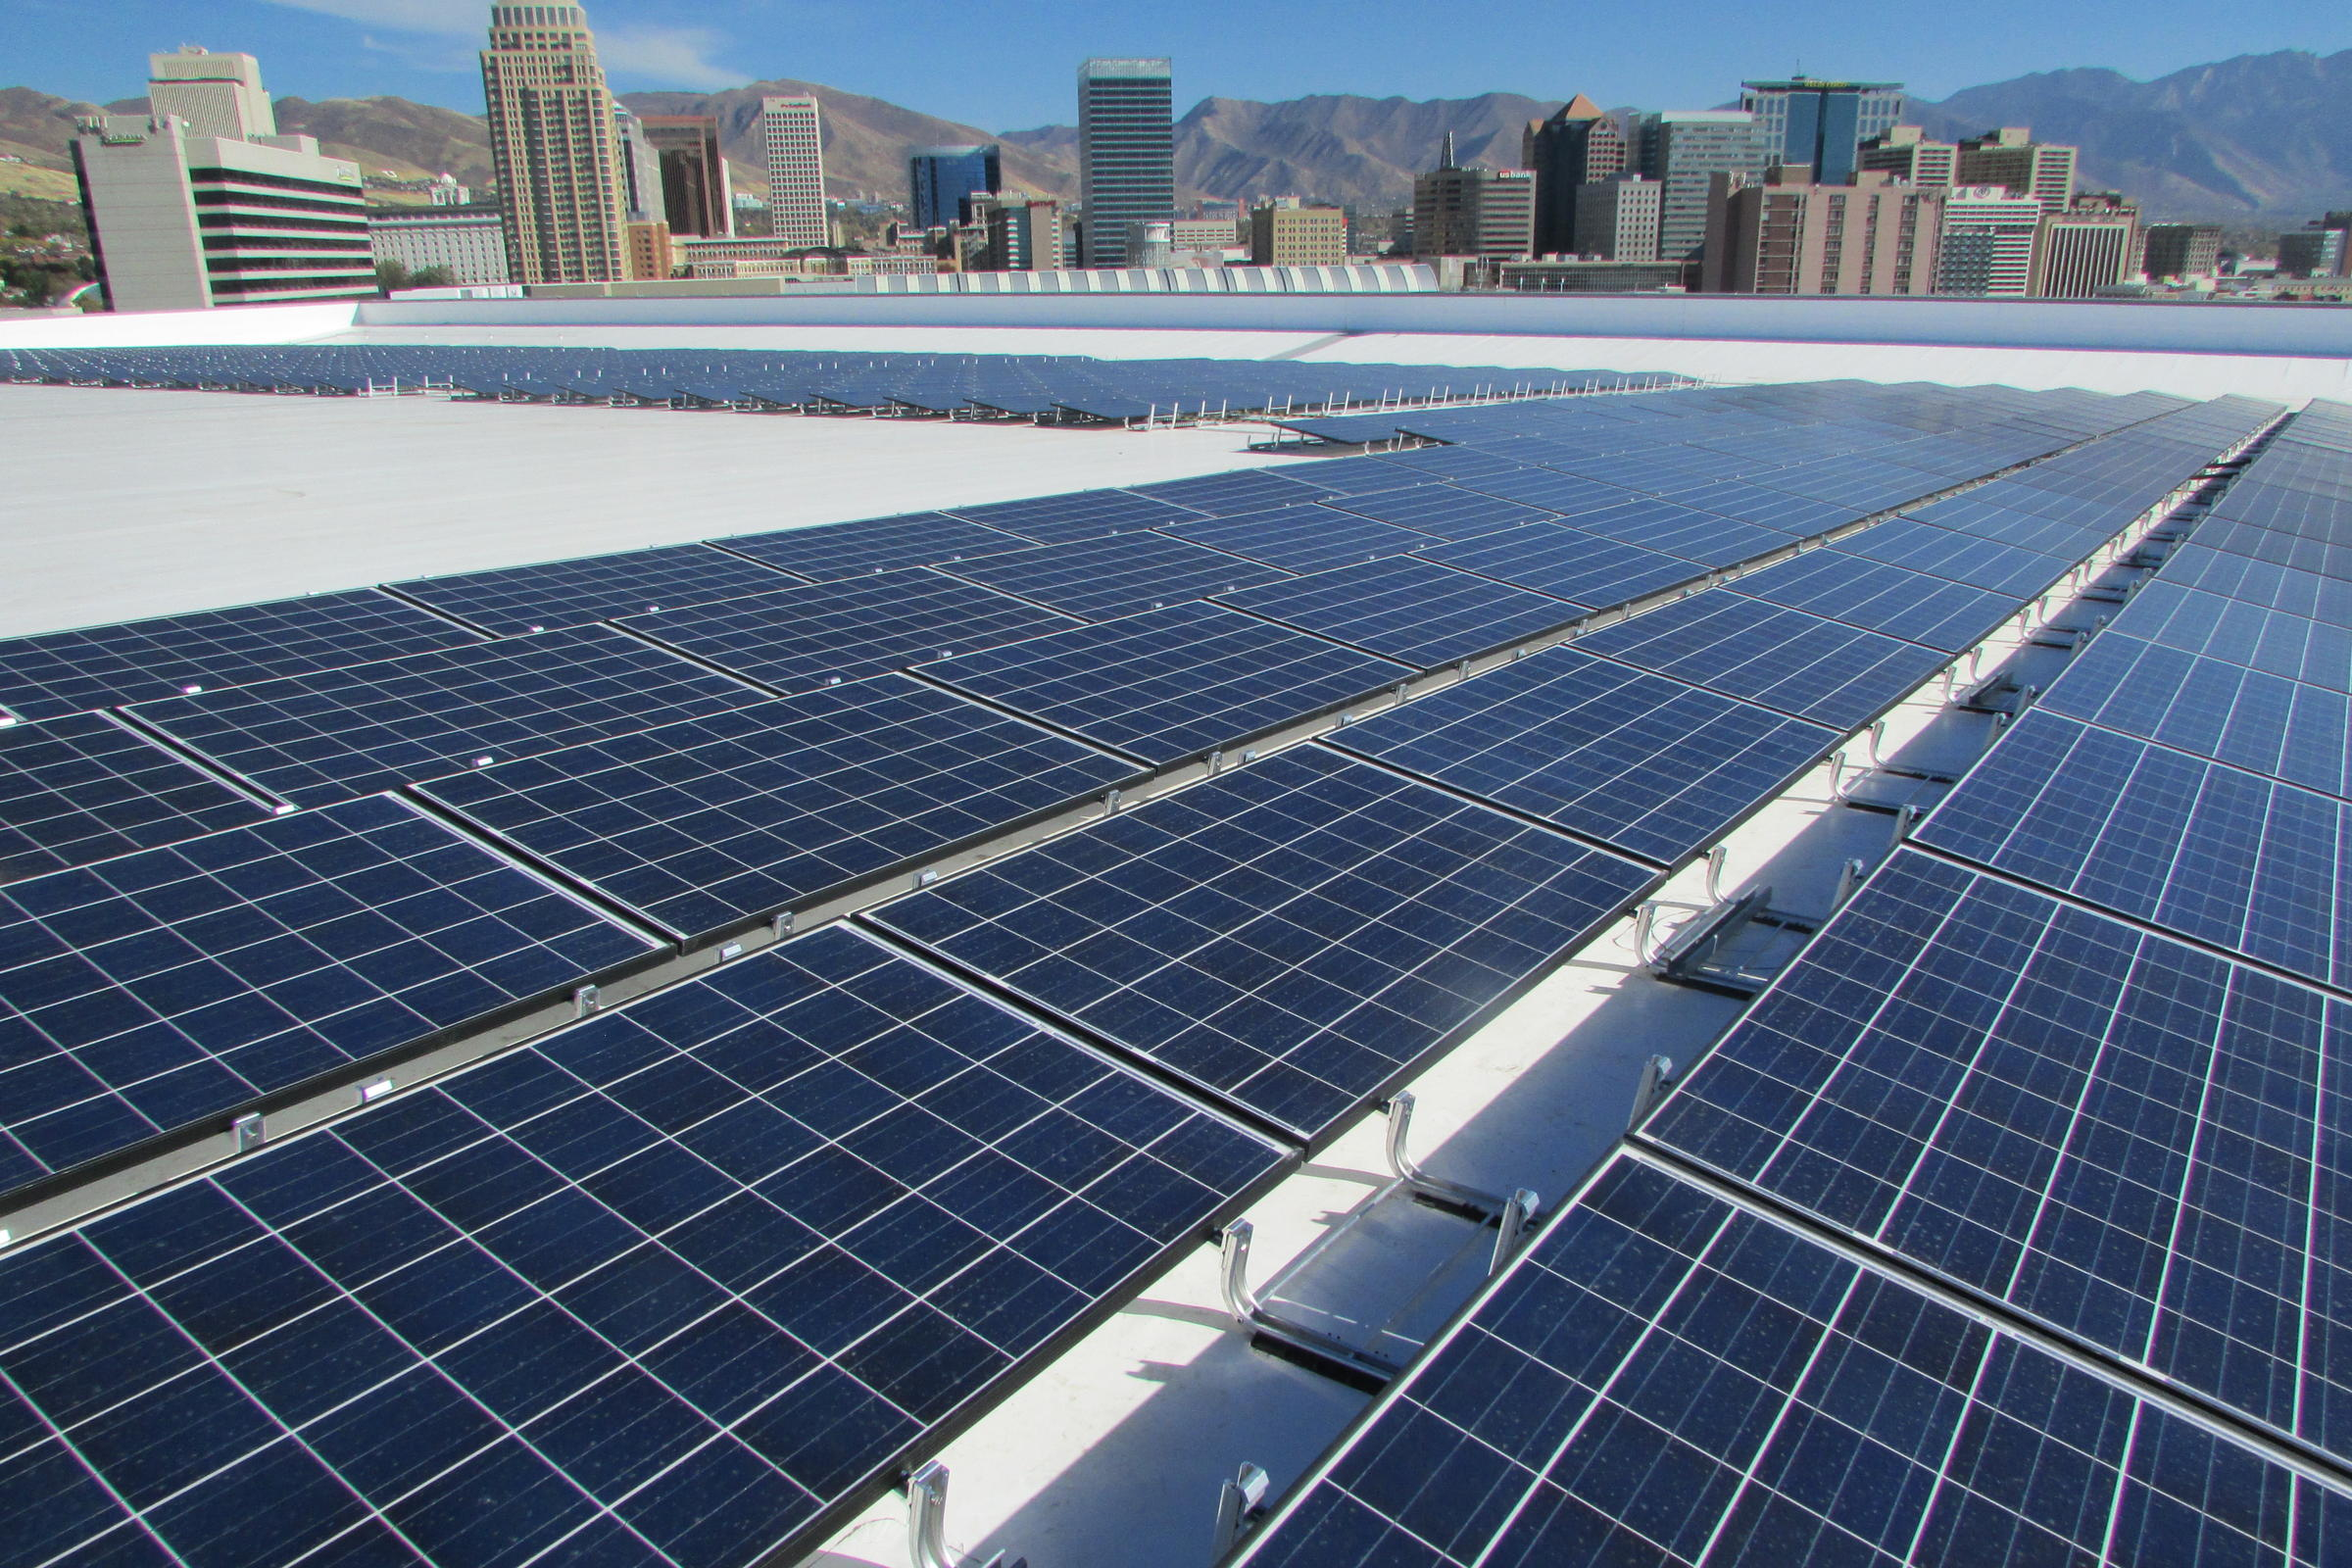 Vivint Solar and the Larry H. Miller Group companies are powering Jazz basketball this season